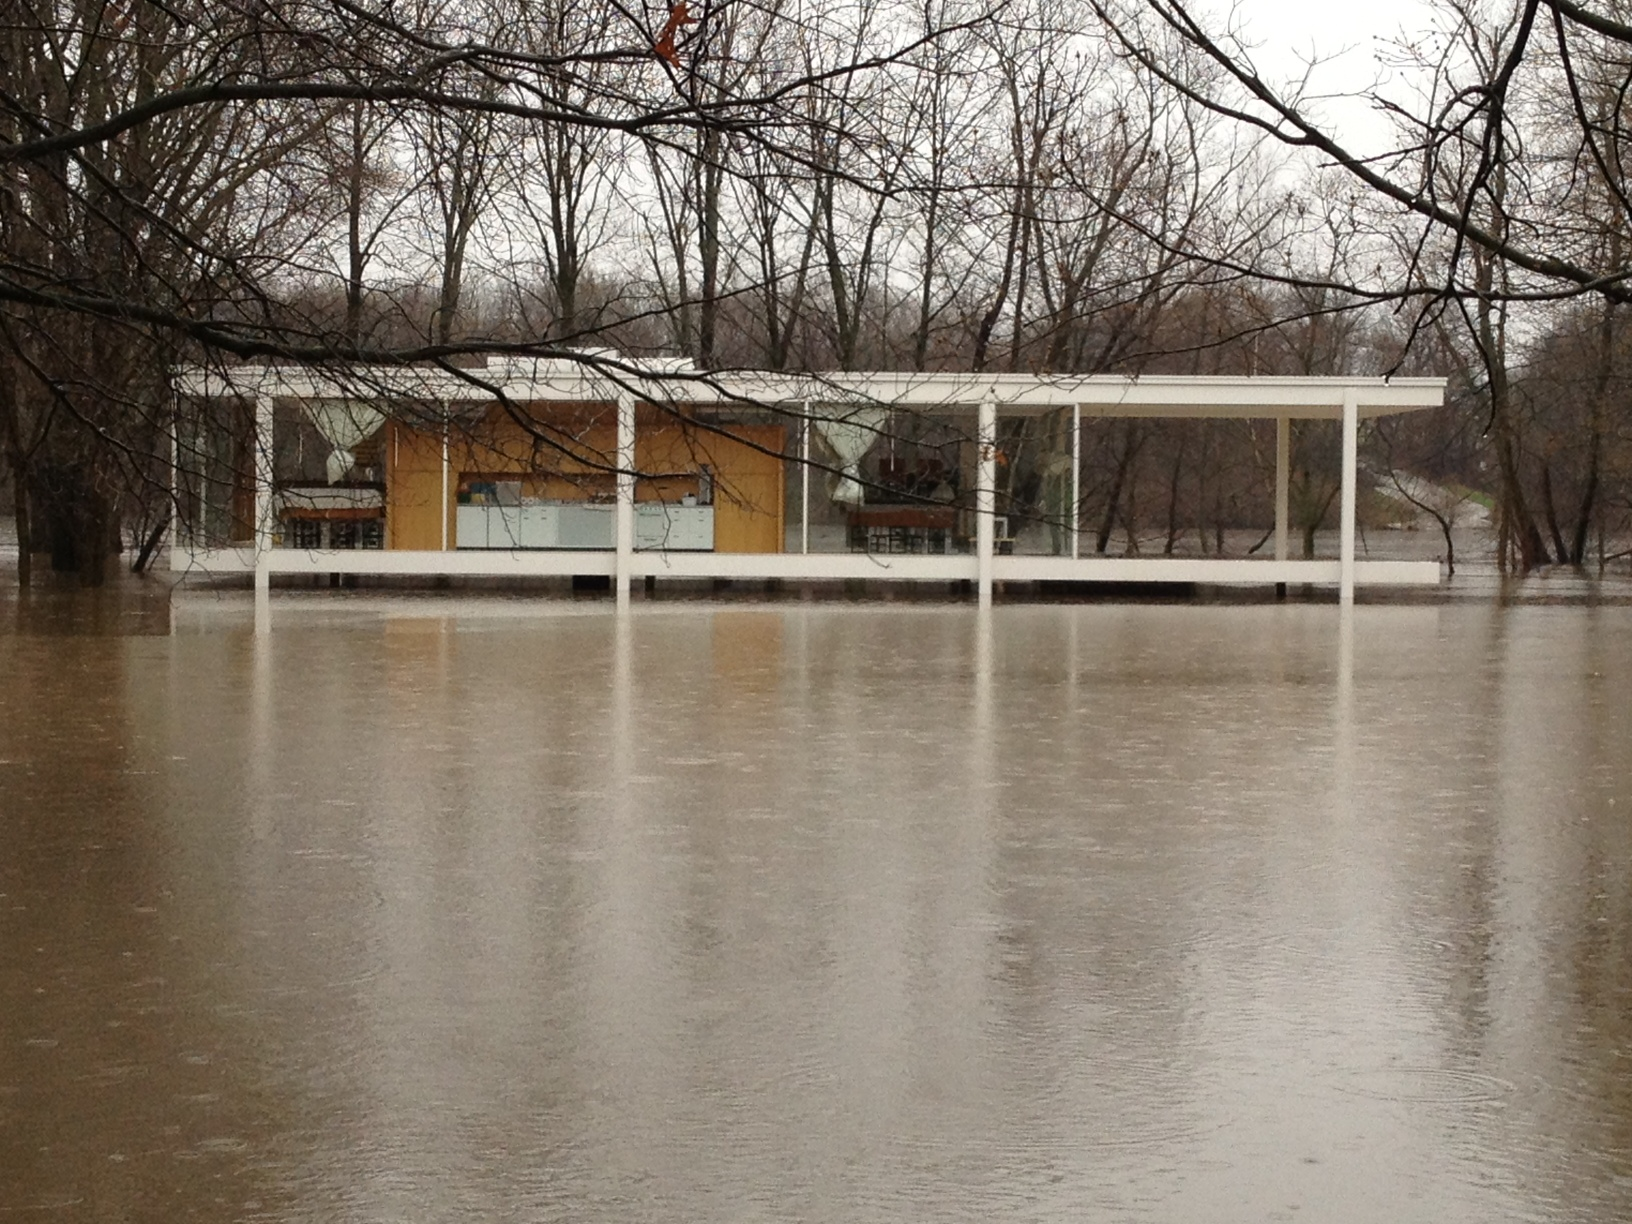 Farnsworth house flooding pictures